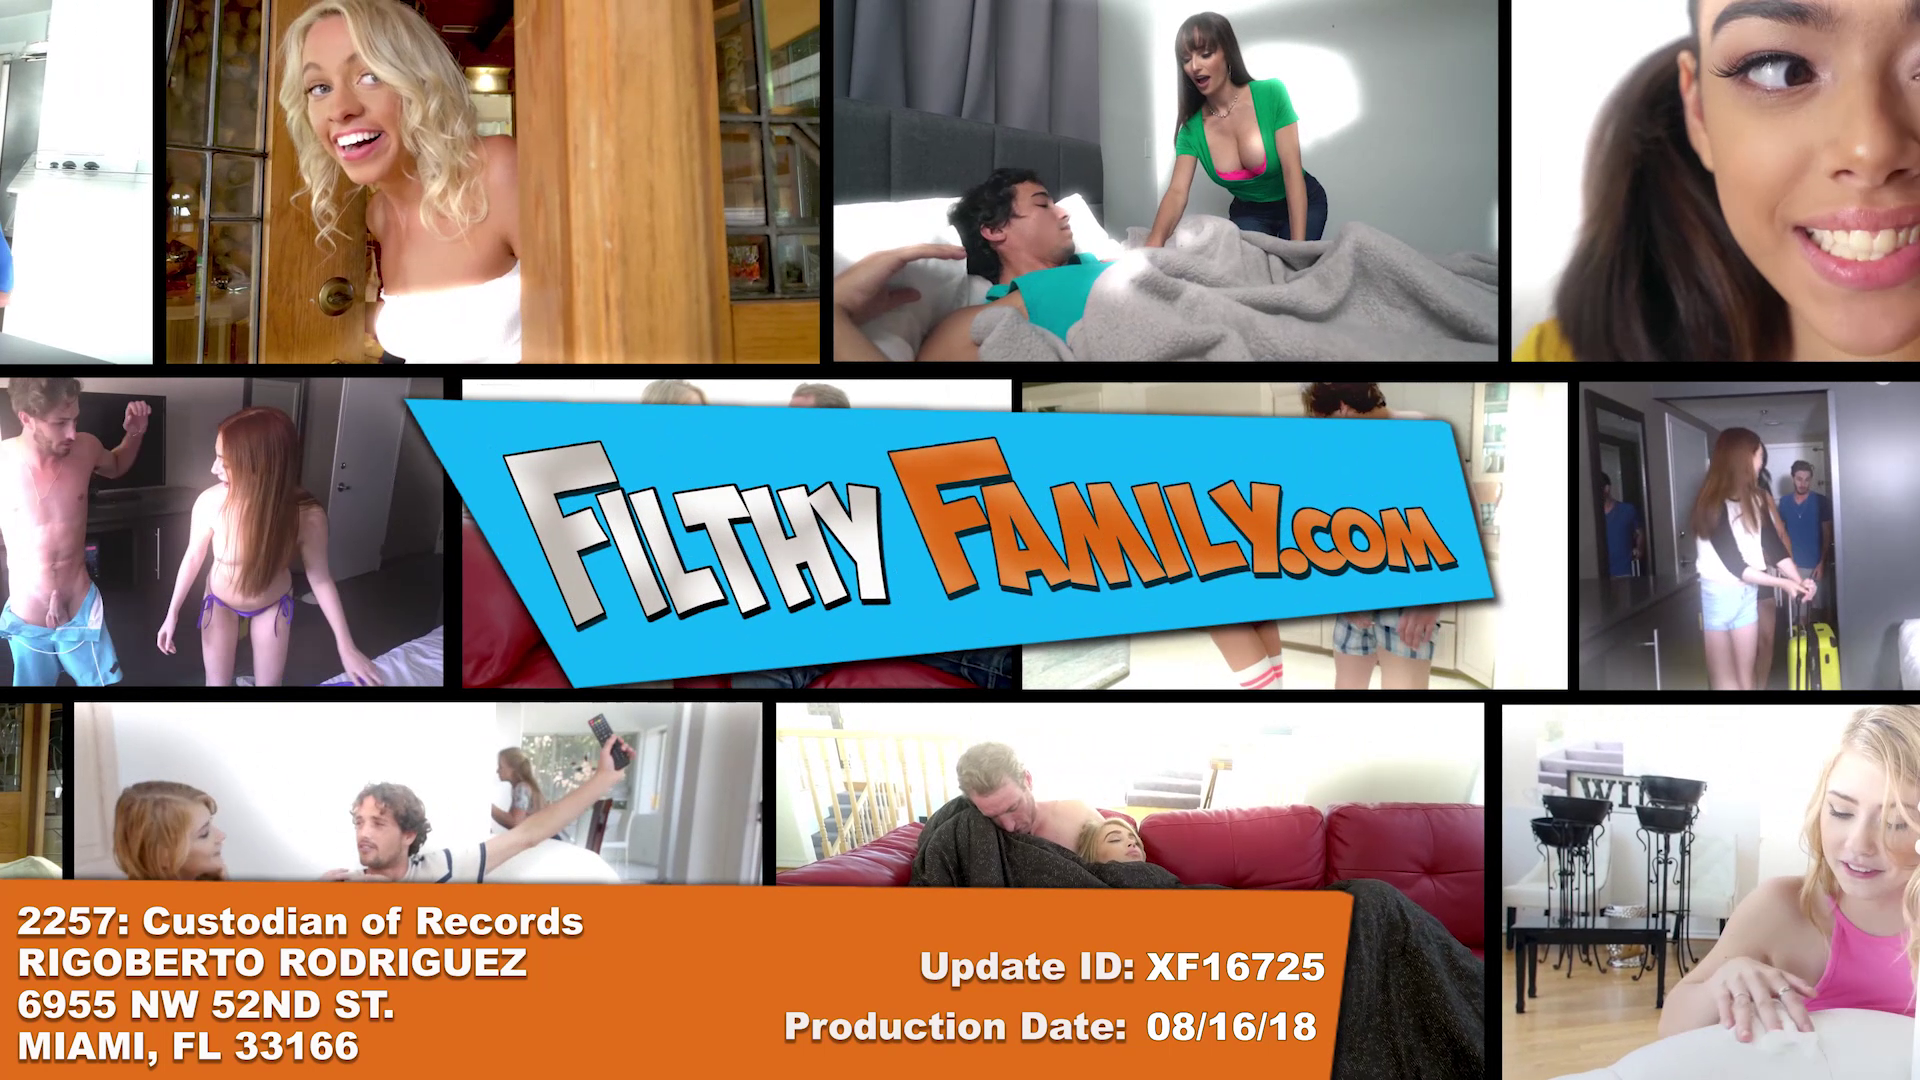 FilthyFamily.com SiteRip - Featuring Taboo Sex Videos Between Family Members. Including Siblings Fucking Around The House, Dirty Step Moms Fucking Their Step Sons, Fathers Getting Seduced By Their Sexy Step Daughters.. And Much More!